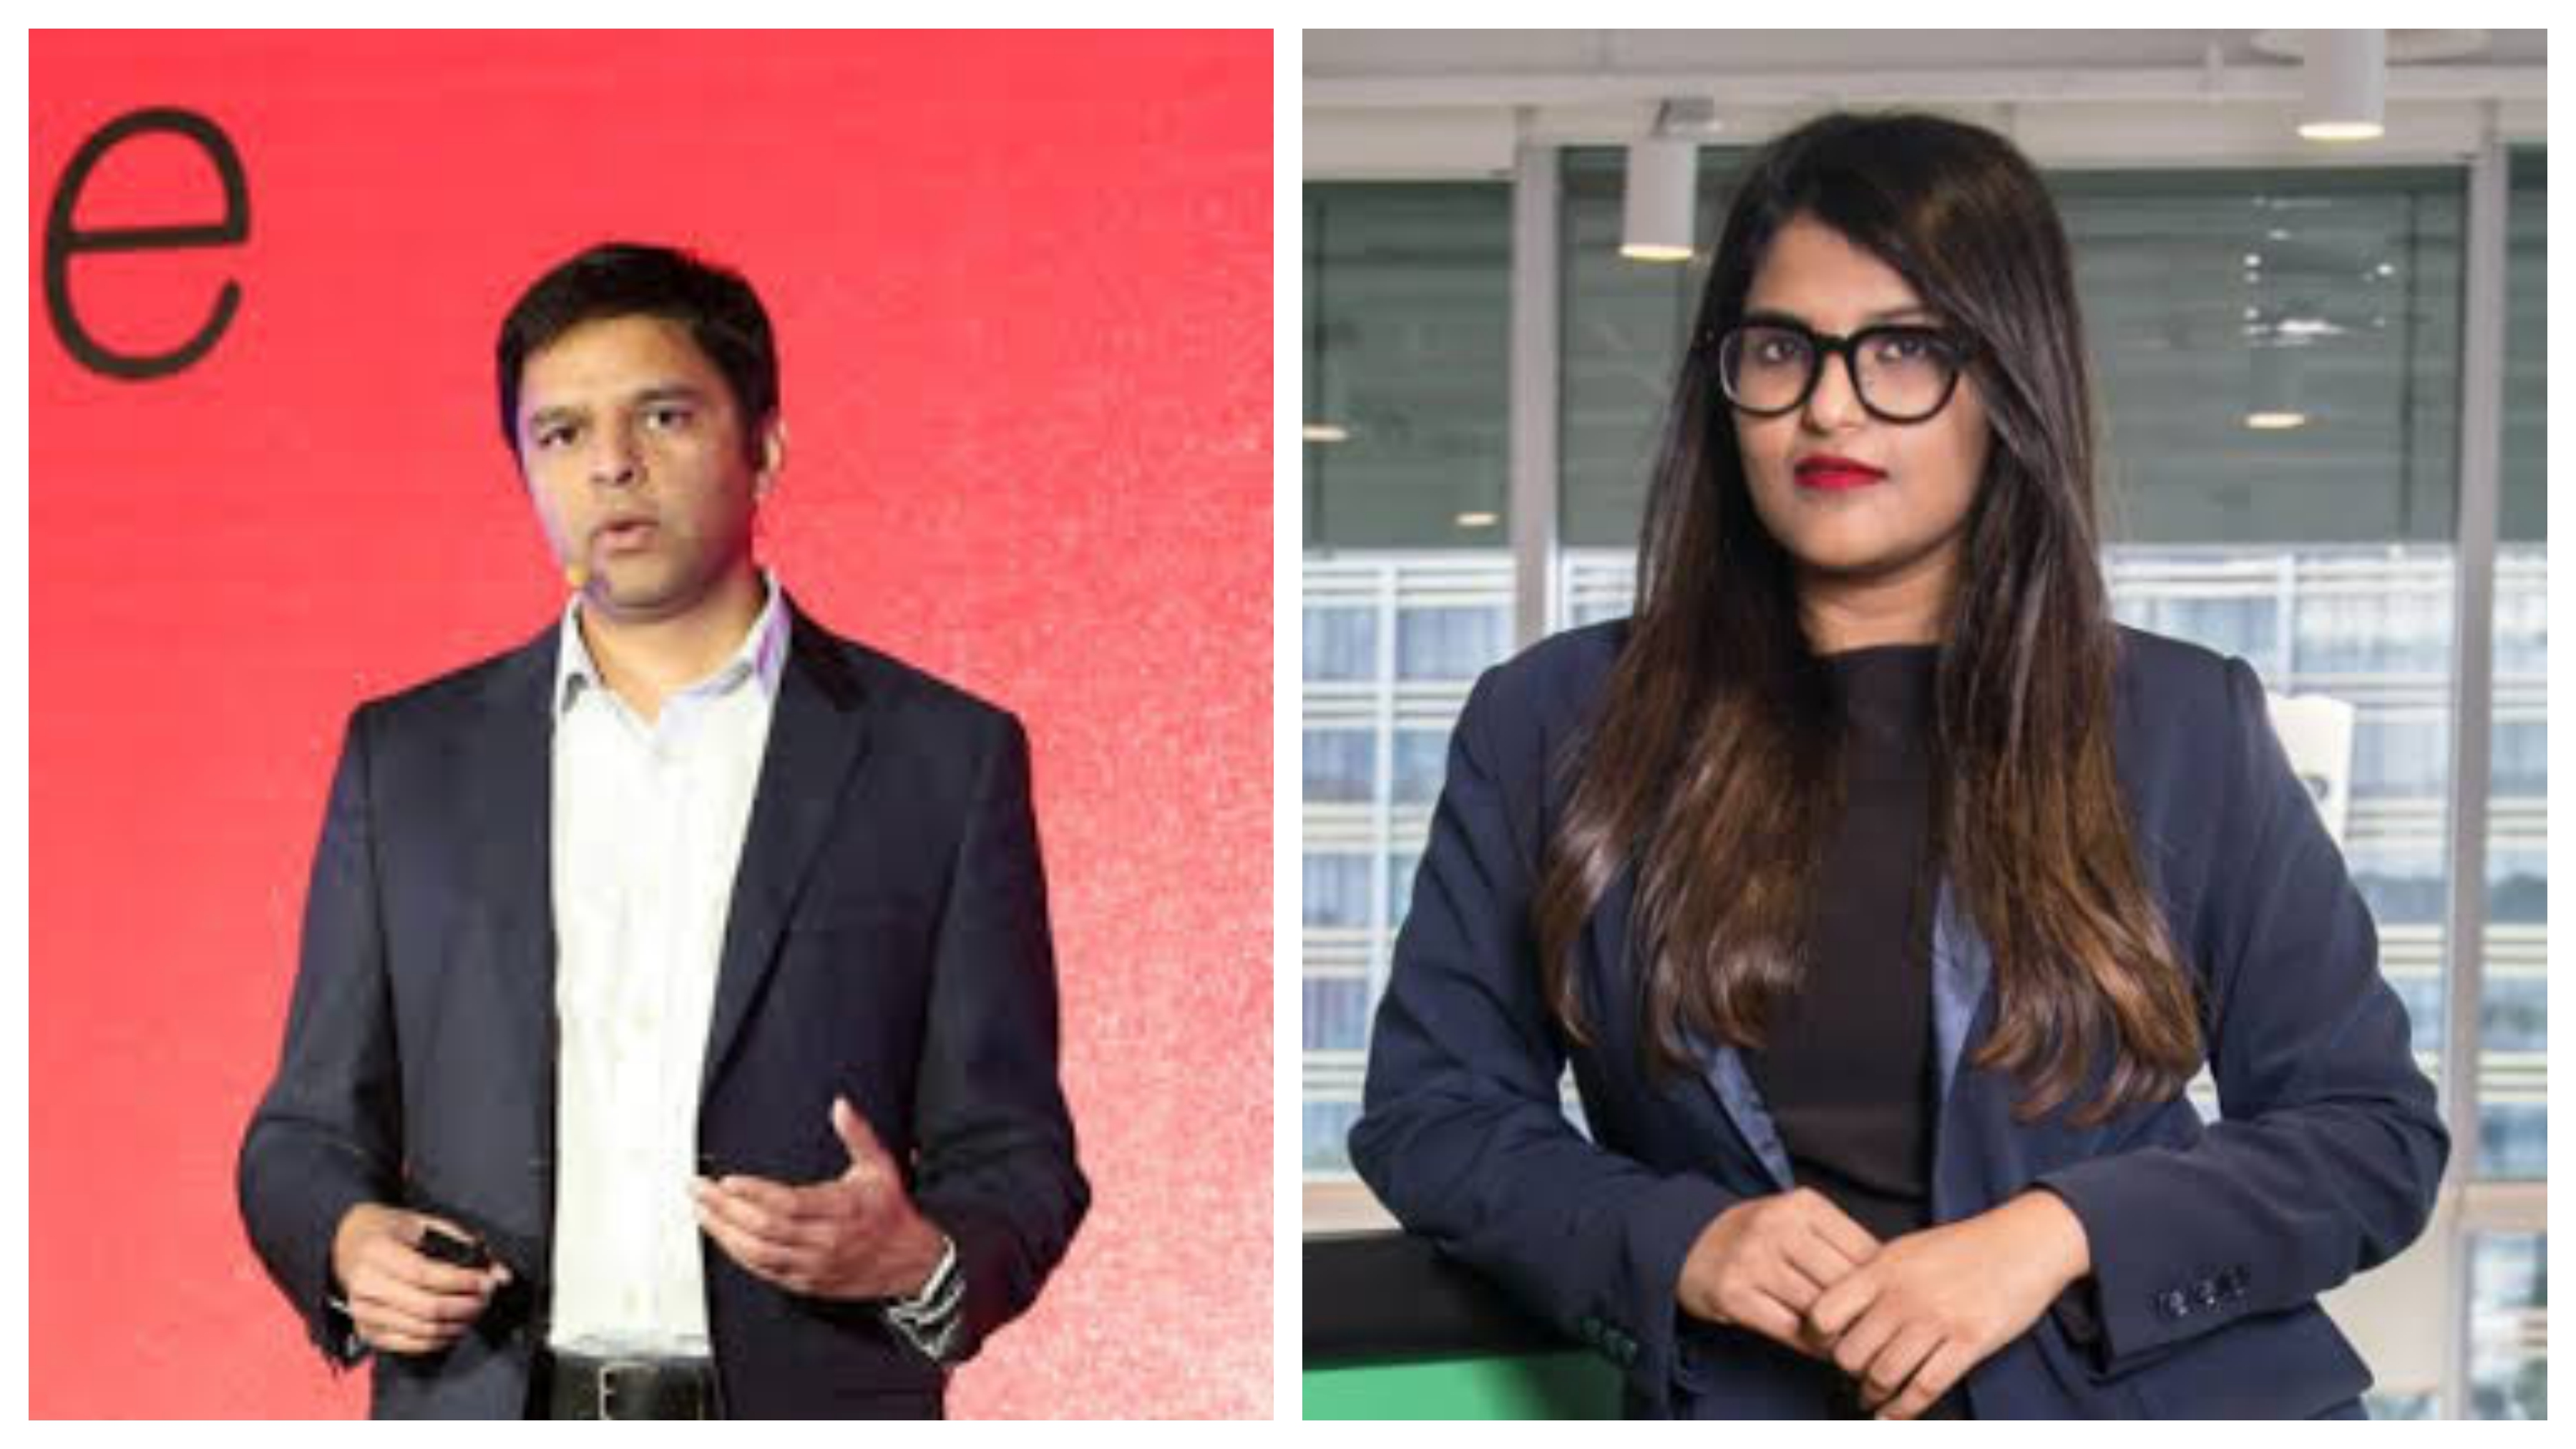 Arjun Bansal, Intel's vice-president of artificial intelligence software and the AI lab, and Ankiti Bose, CEO and co-founder of fashion platform Zilingo, made it to the Fortune's 2019 '40 Under 40' list.